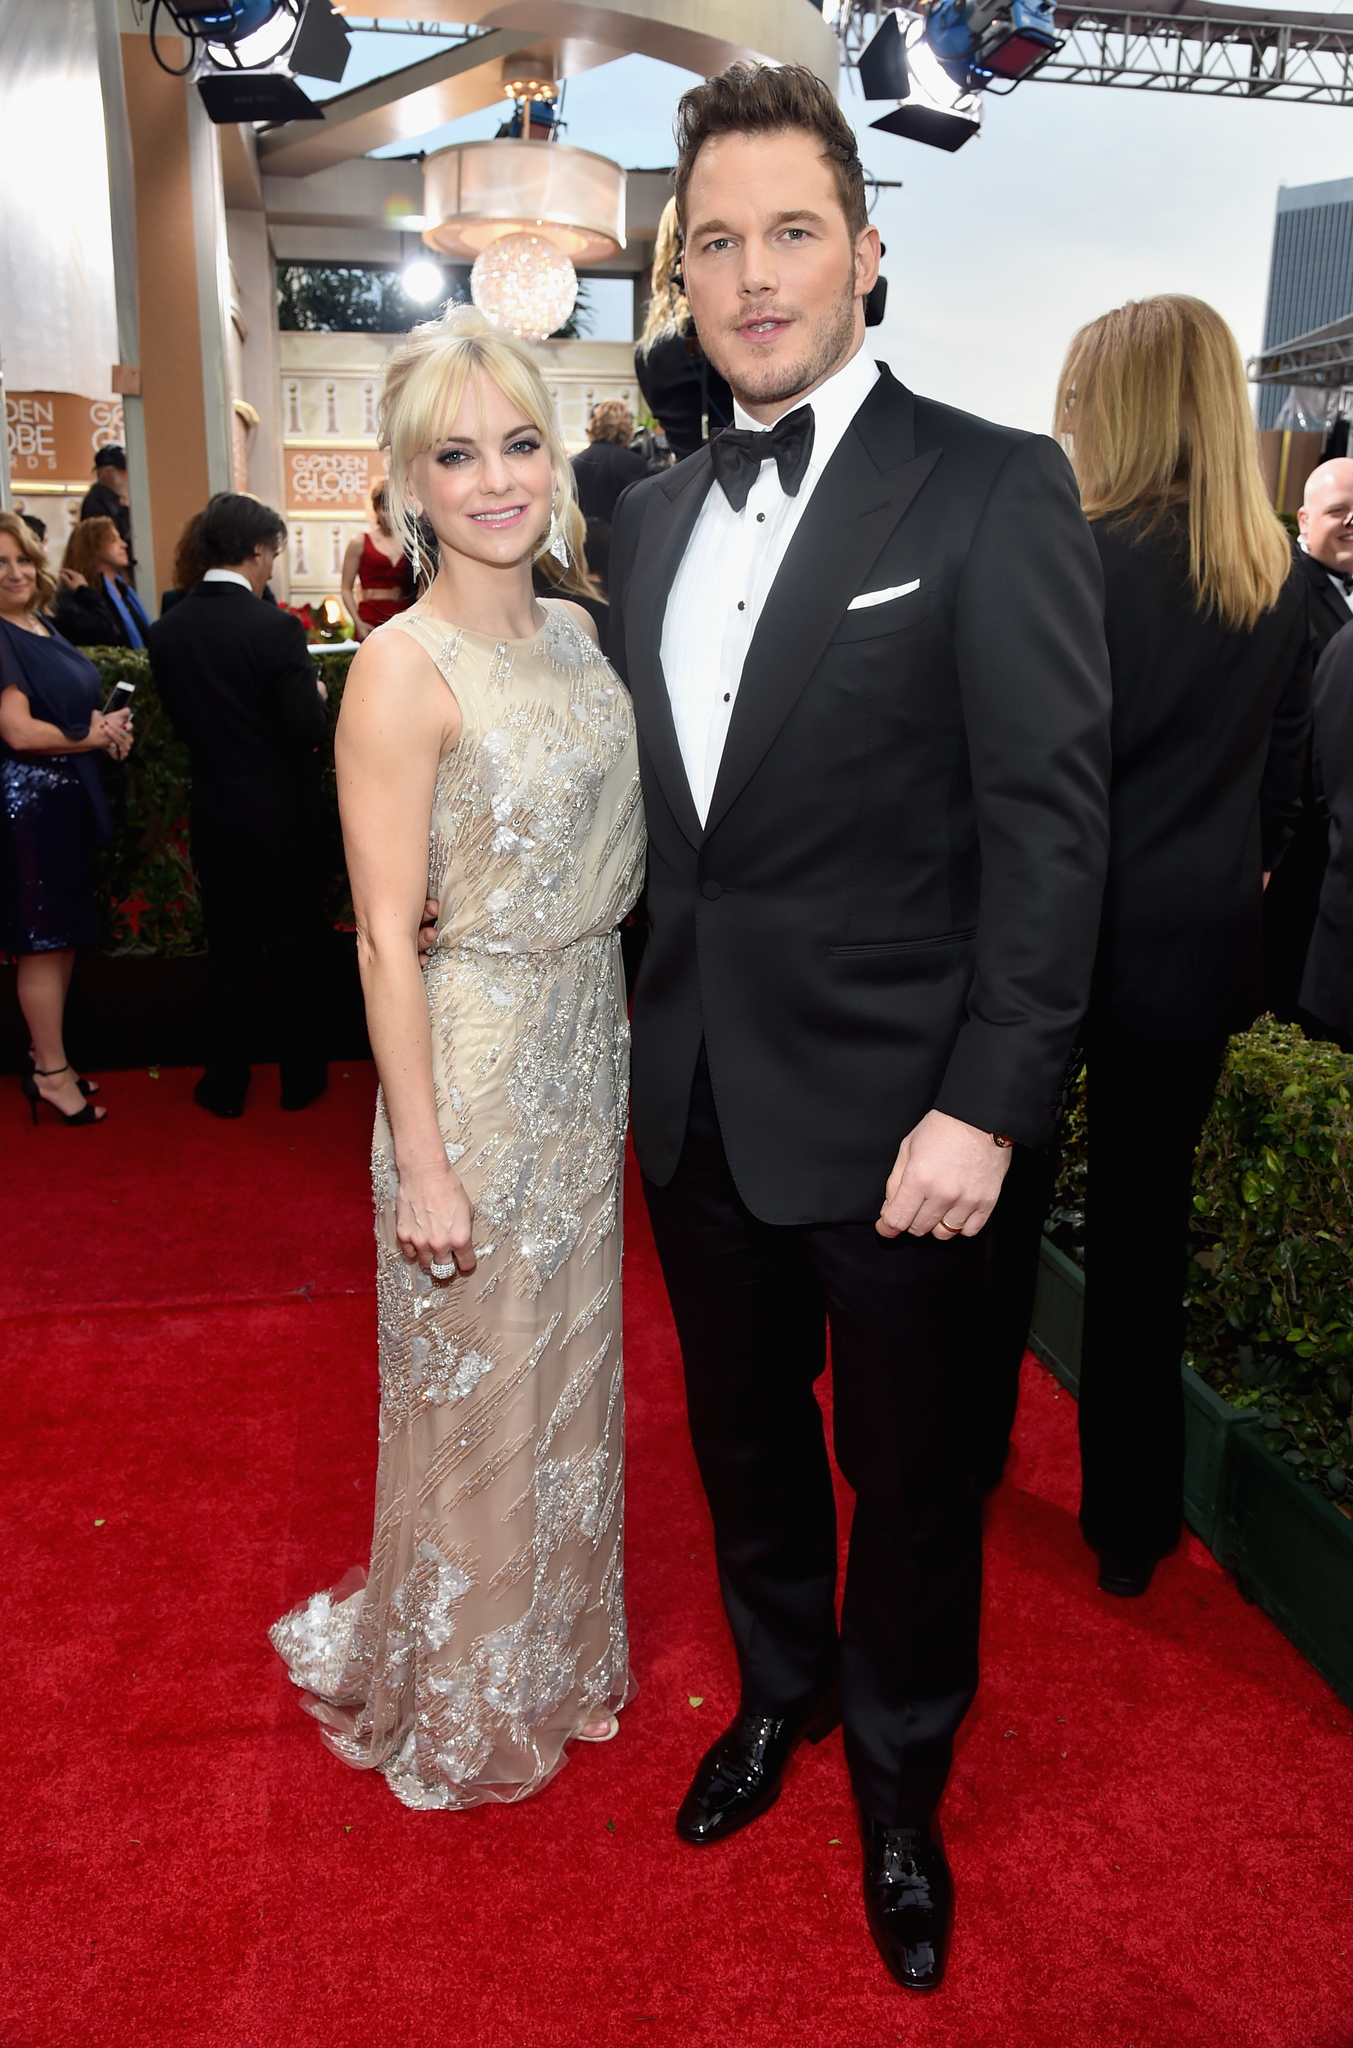 Anna Faris and Chris Pratt at event of 72nd Golden Globe Awards (2015) photo #489102